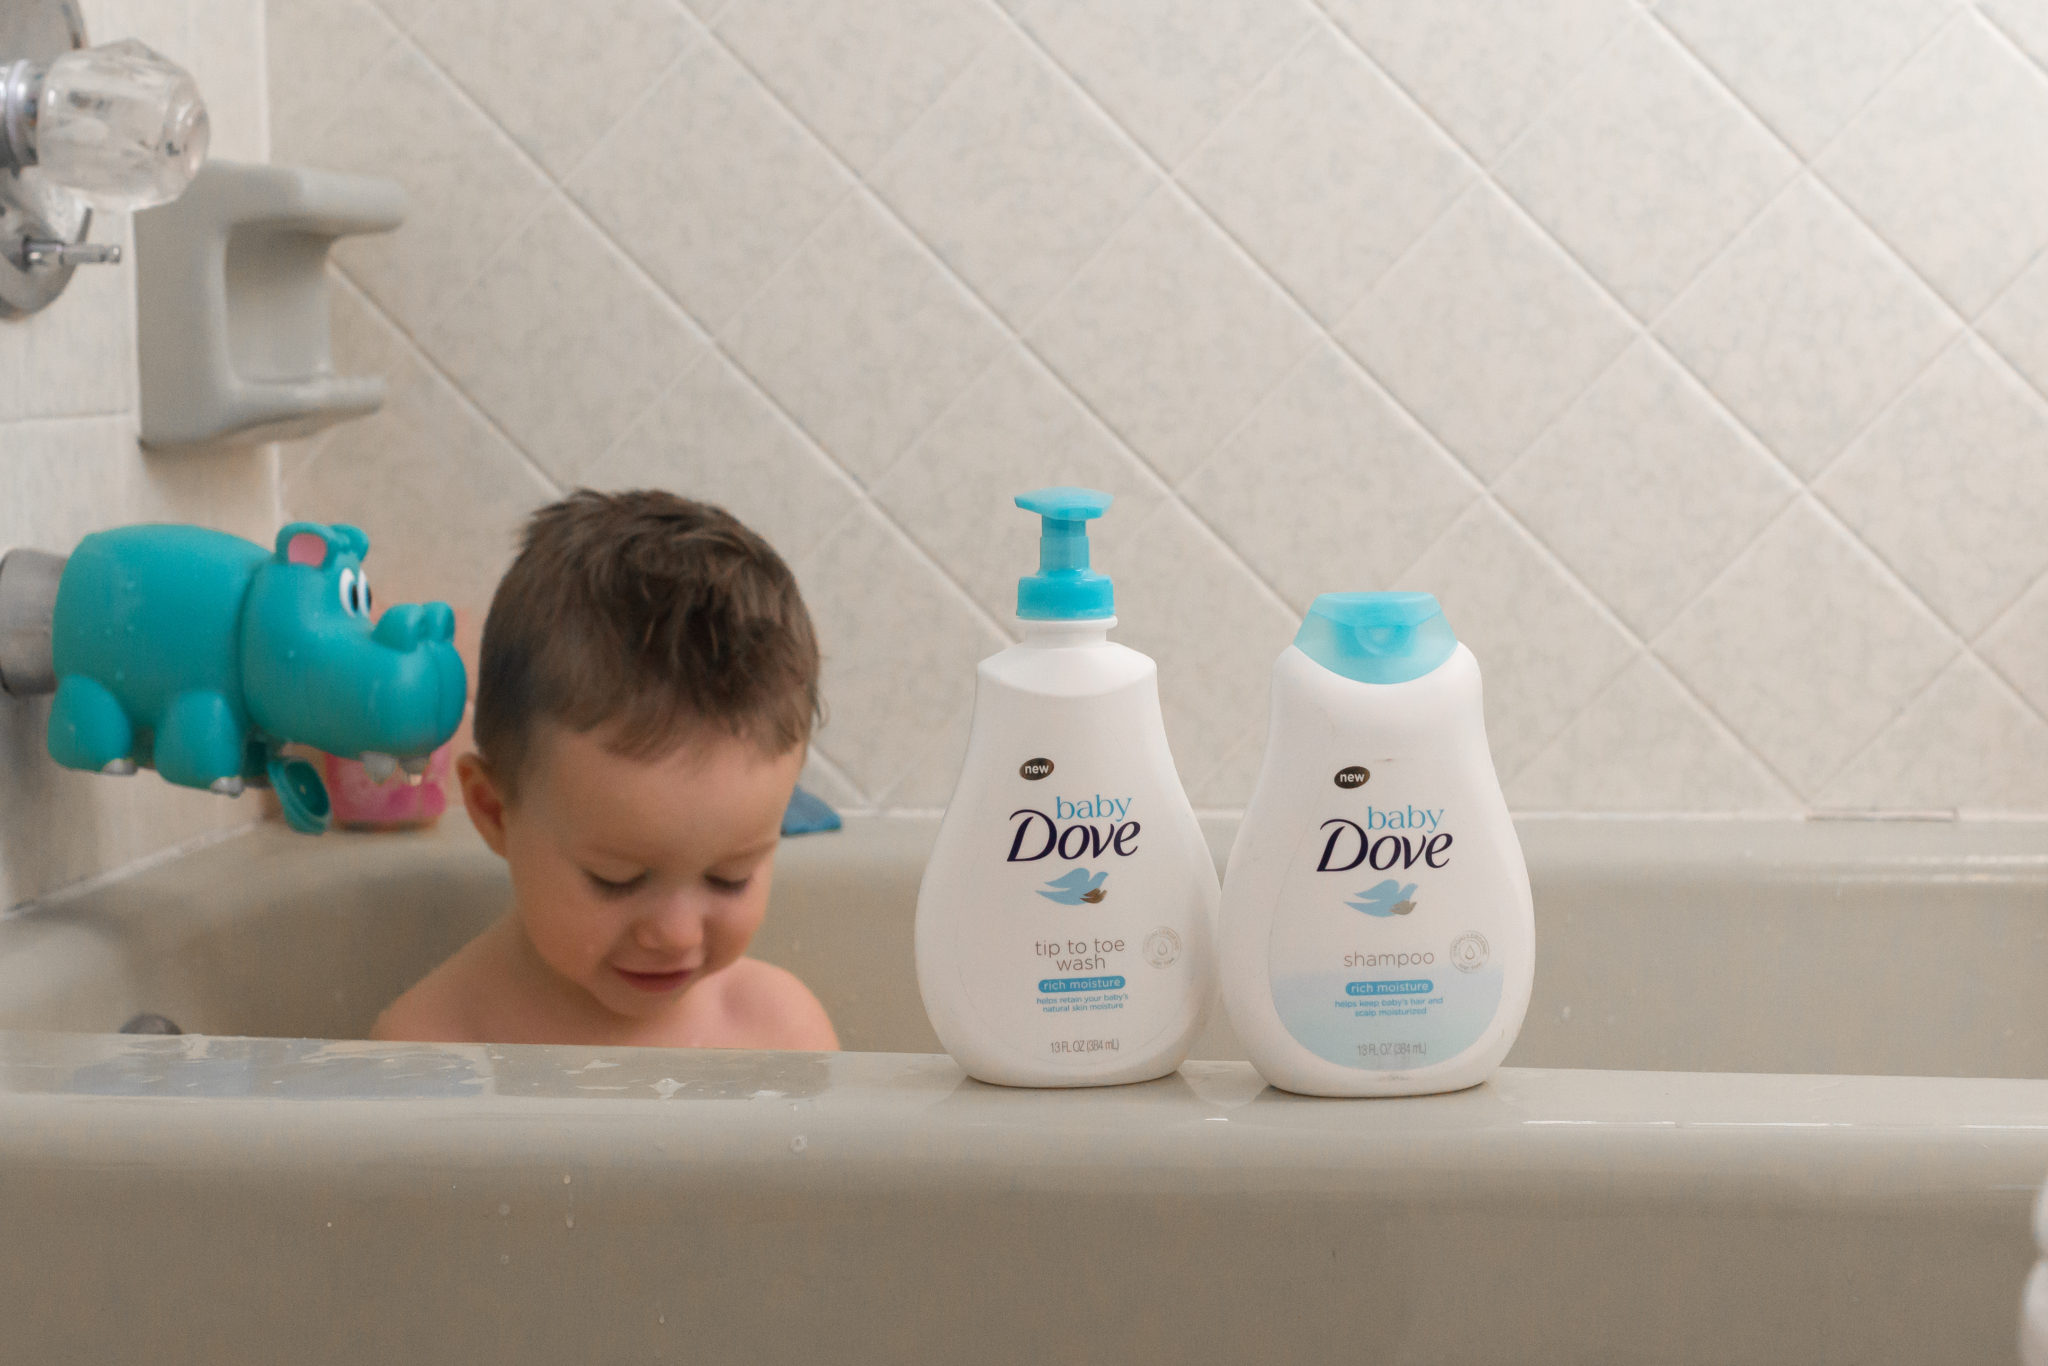 Bonding with Dad through an easy Bath Time Routine with Baby Dove Body Wash and Lotion #ad #BabyDovePartner #BabyDoveLove #RealMoms #RealDads #RealParents